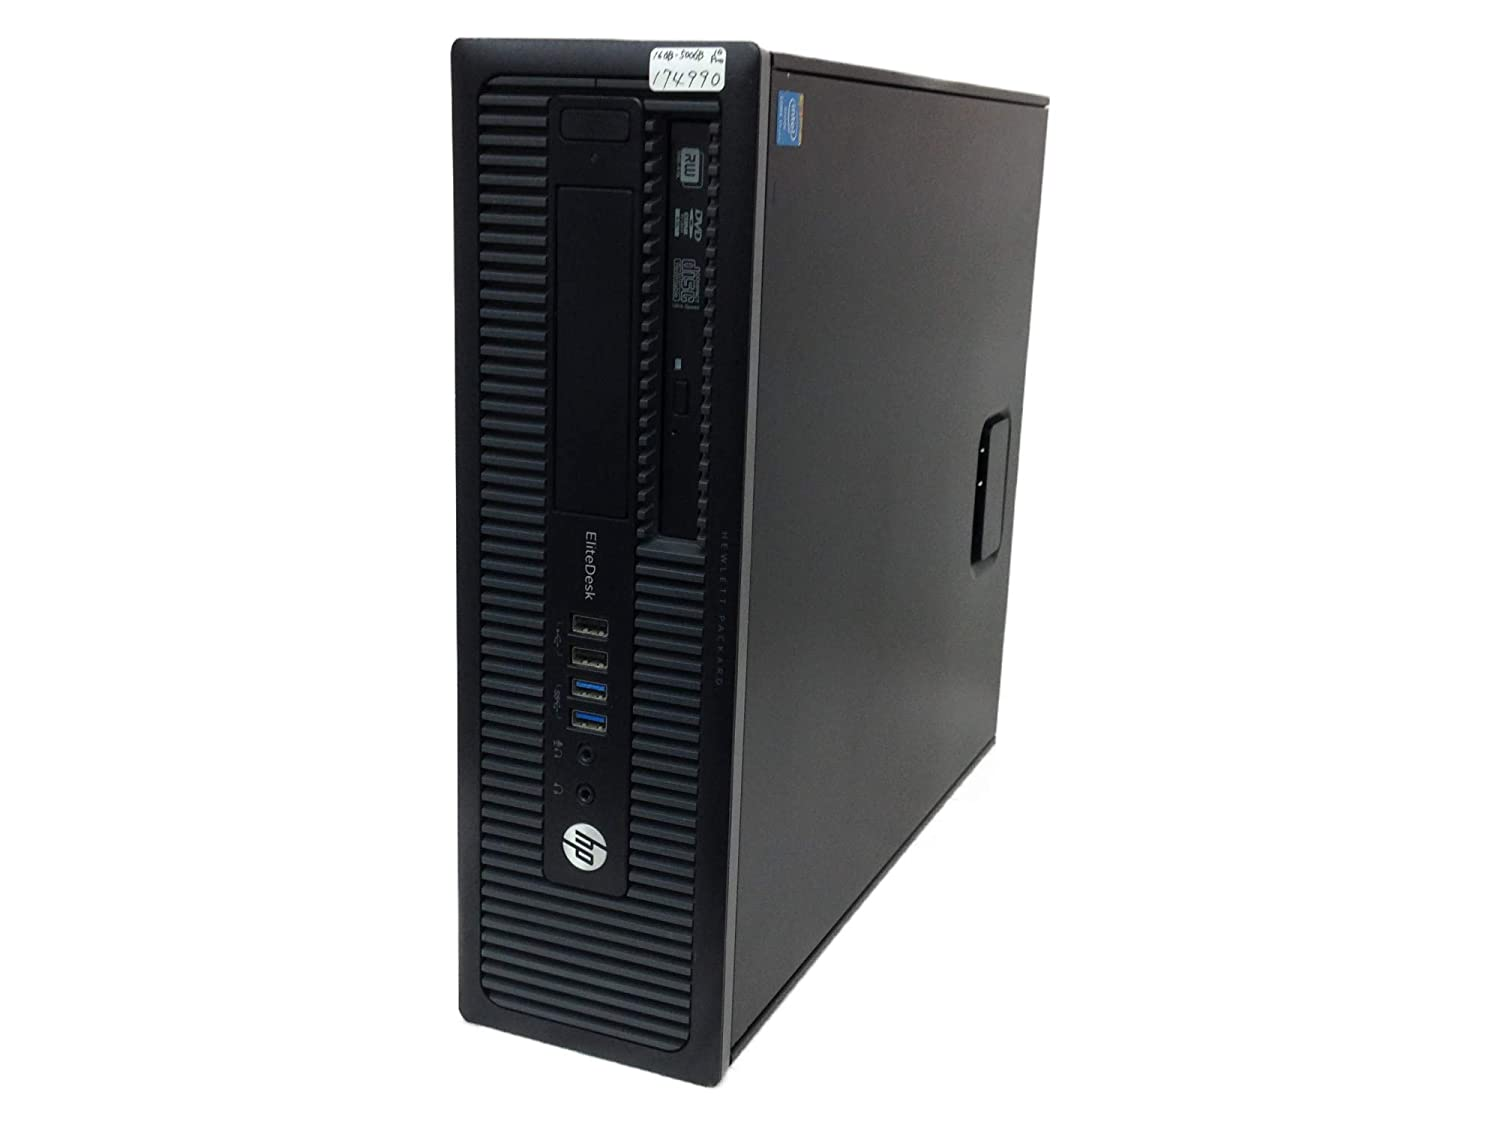 輝い 【中古 4590】 800 ヒューレットパッカード HP EliteDesk 800 Windows10 G1 SFF デスクトップパソコン Core i5 4590 3.3GHz メモリ16GB HDD500GB DVDスーパーマルチ Windows10 Professional 64bit C8N26AV B07MX2RGS6, bookfan 2号店:b858549e --- arbimovel.dominiotemporario.com